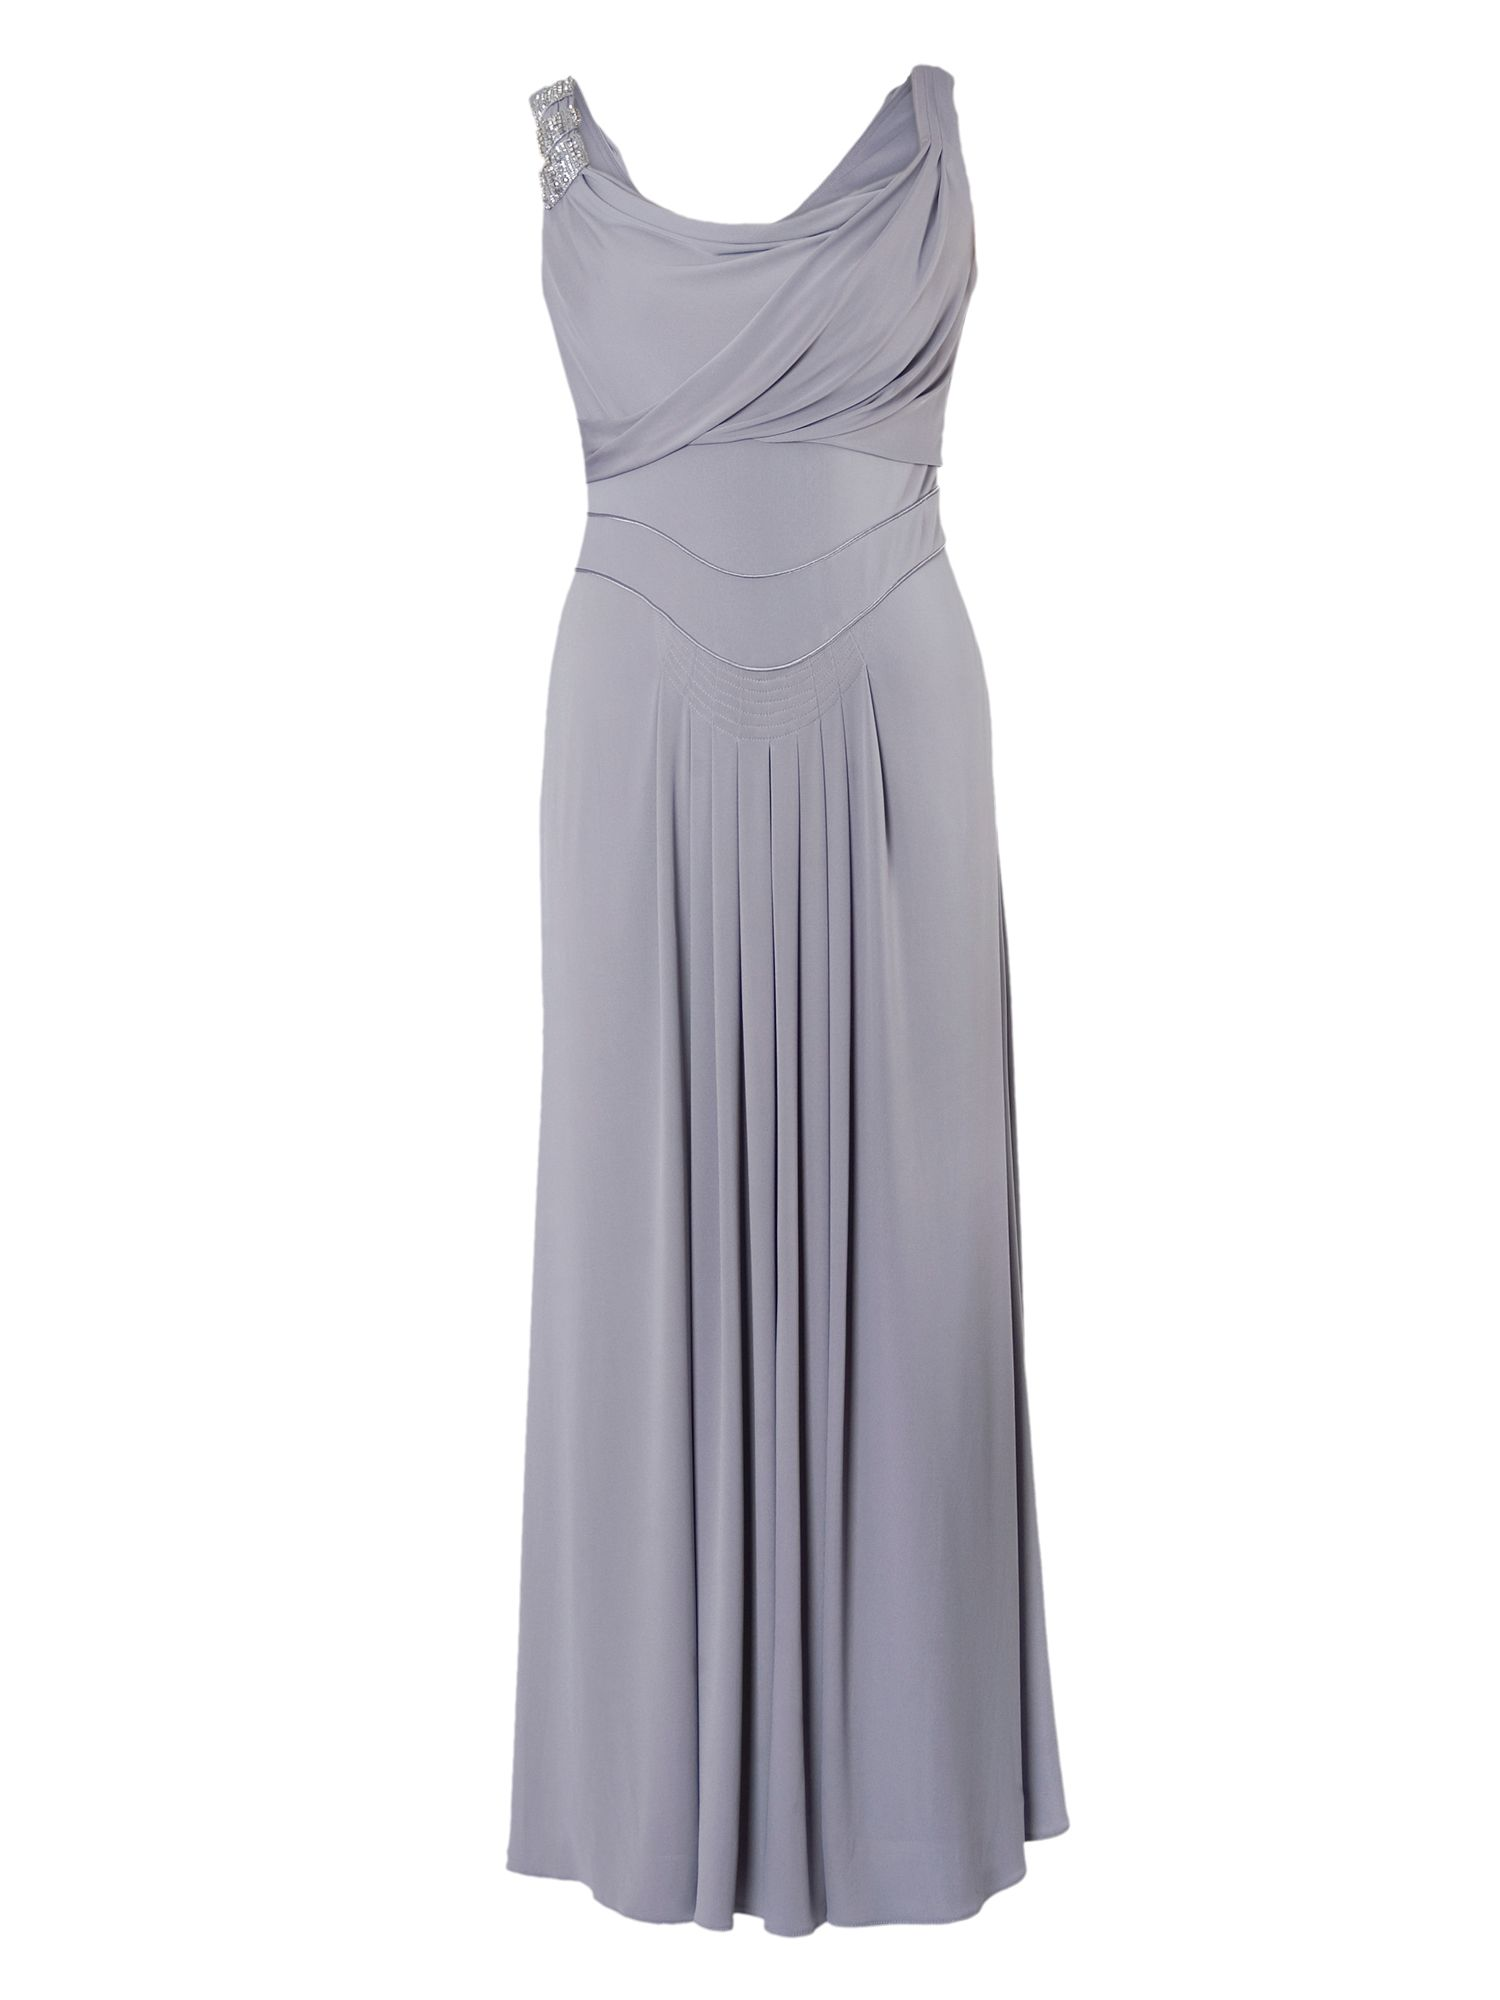 Silver Grey Cowl & Drape Detail Evening Dress